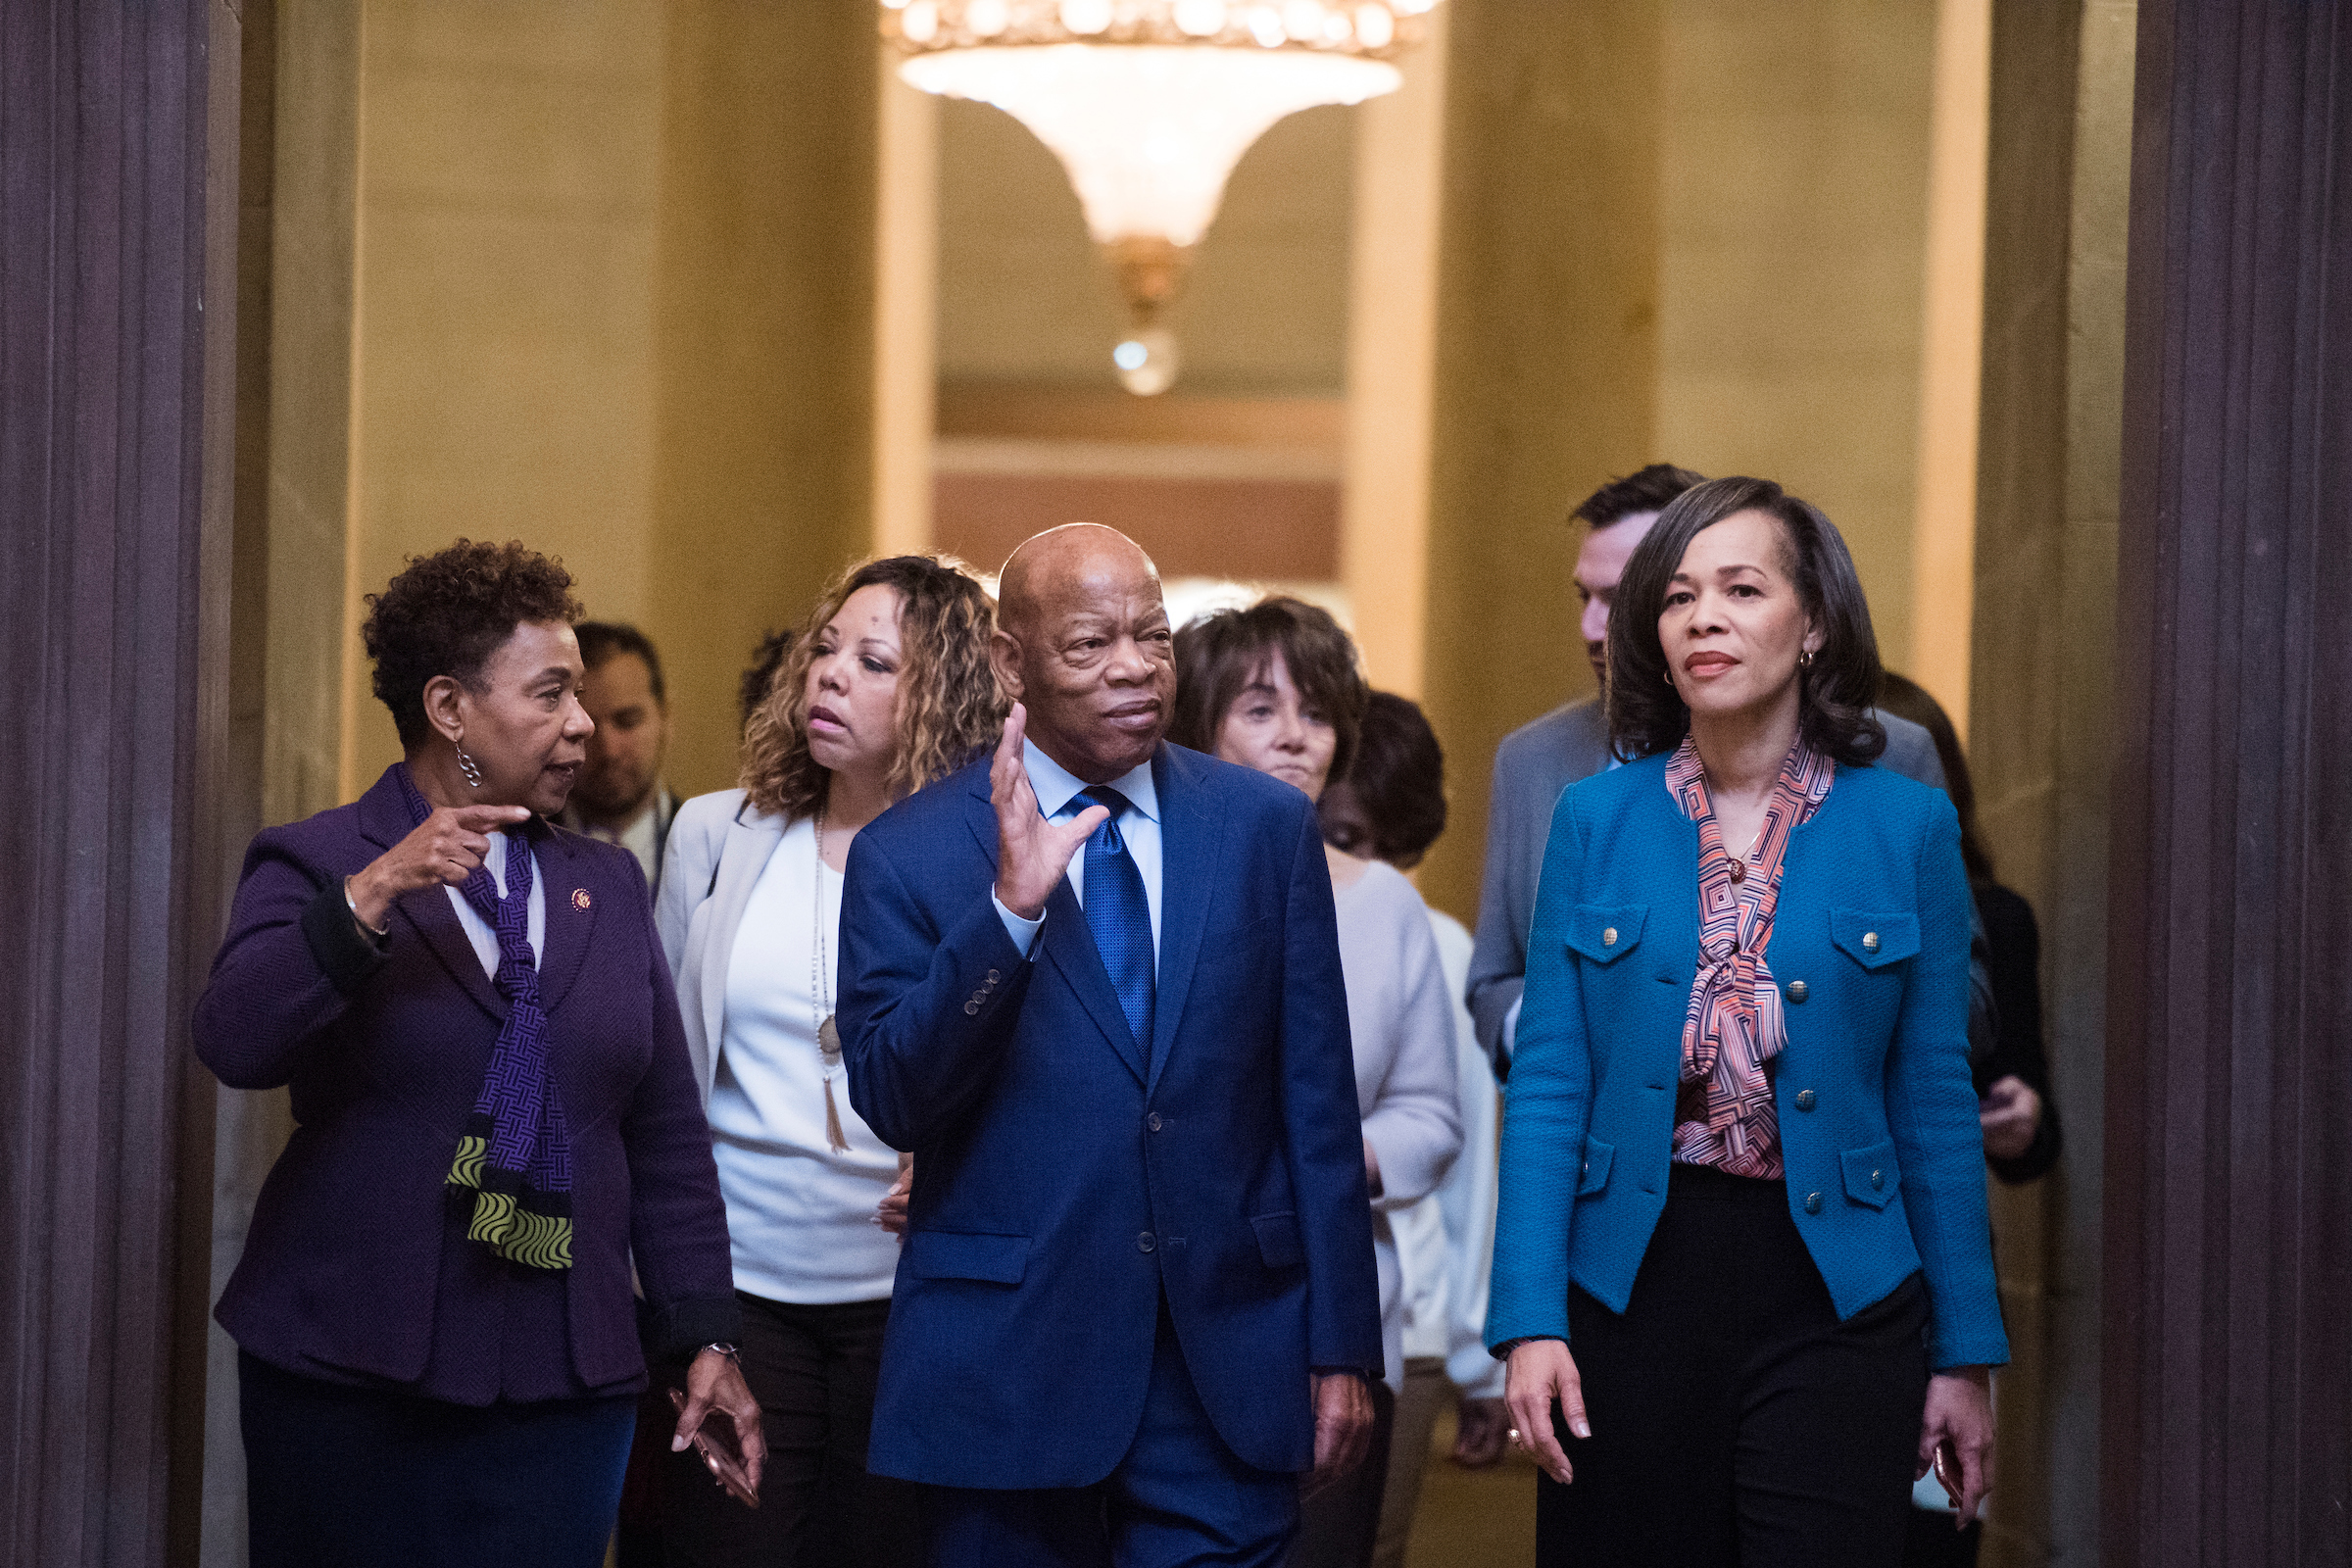 From left, Reps. Barbara Lee, D-Calif., Lucy McBath, D-Ga., John Lewis, D-Ga., Anna Eshoo, D-Calif., and Lisa Blunt Rochester, D-Del., walk through the Capitol Rotunda after watching a Senate a vote on a continuing resolution to re-open the government which failed, on Thursday, Jan. 24, 2019. (Tom Williams/CQ Roll Call)